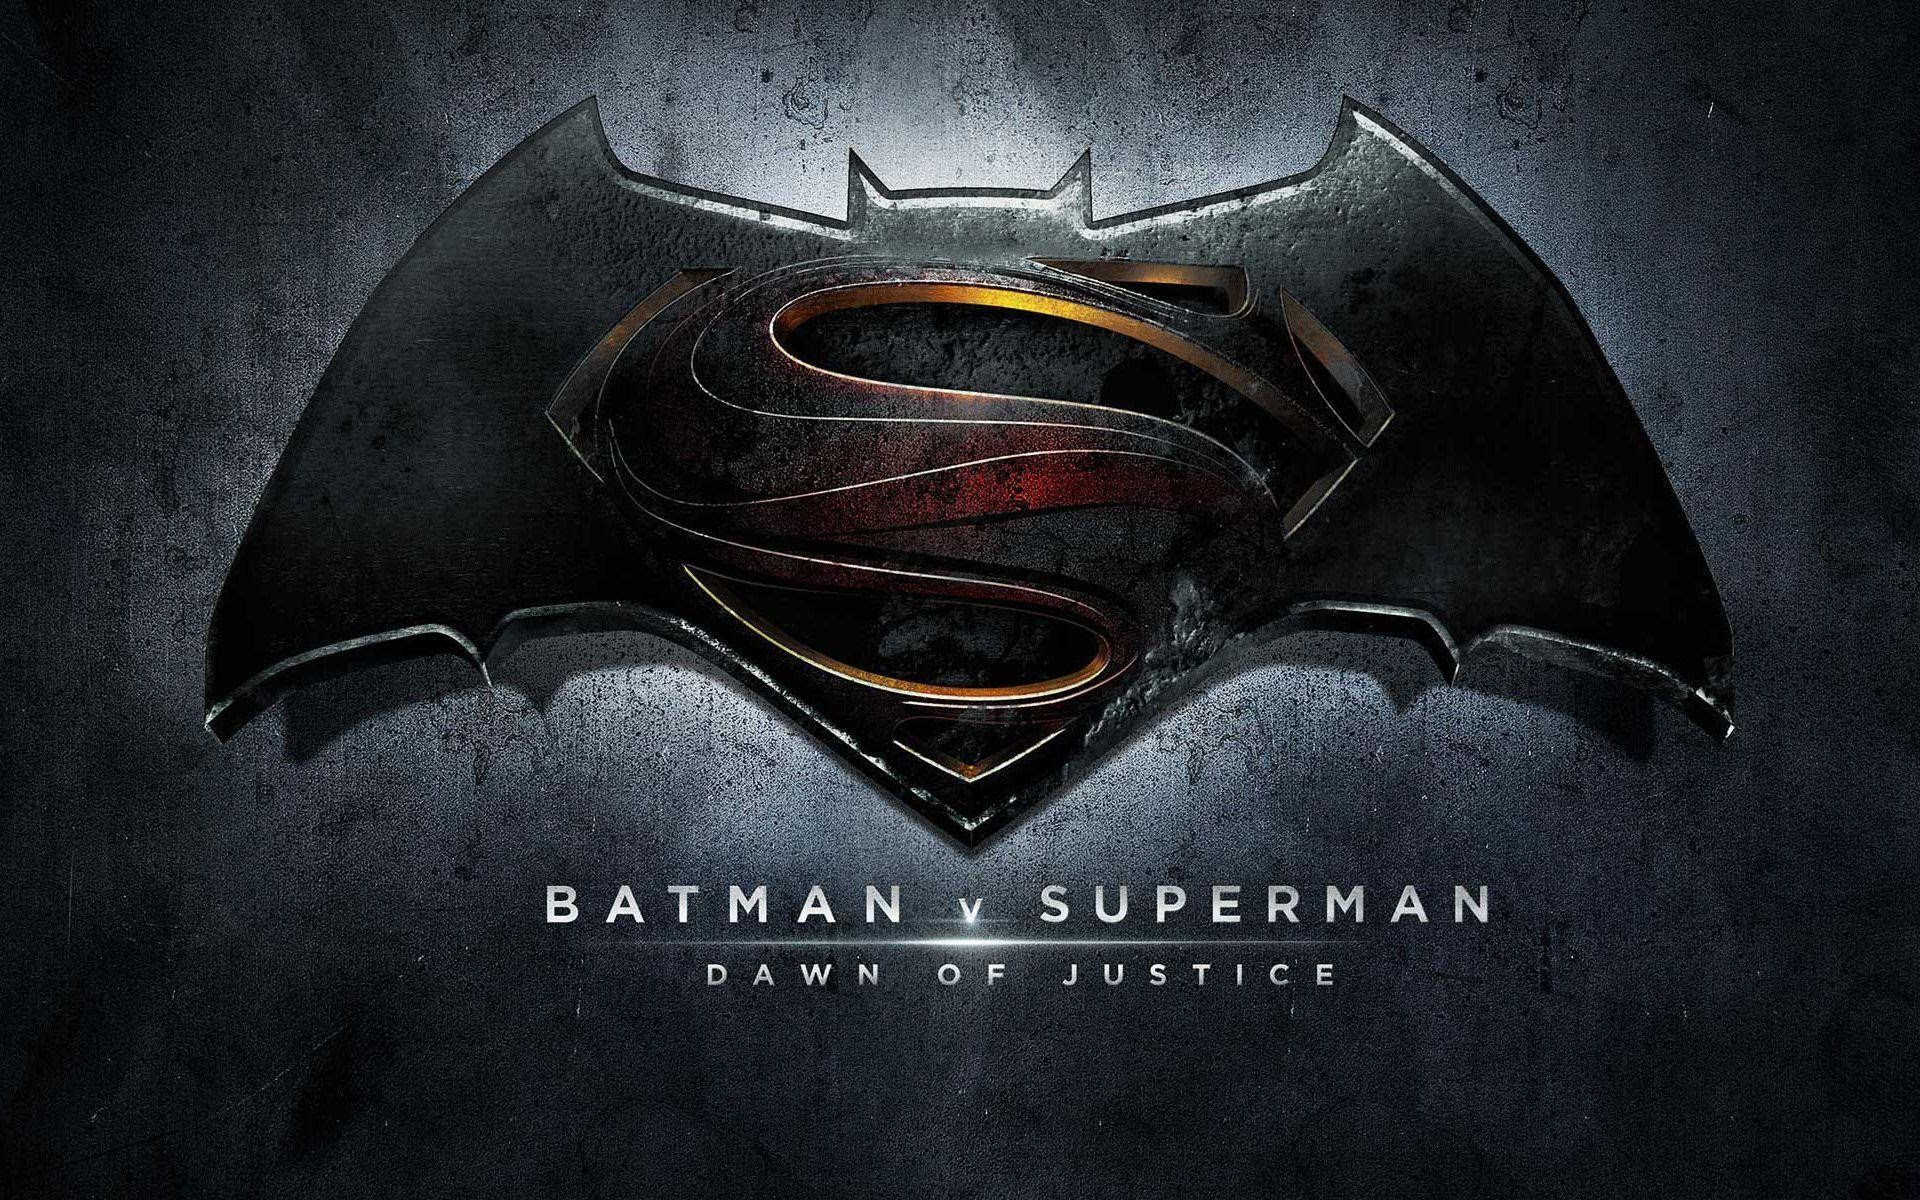 Batman Vs Superman Wallpaper Hd 79 Images